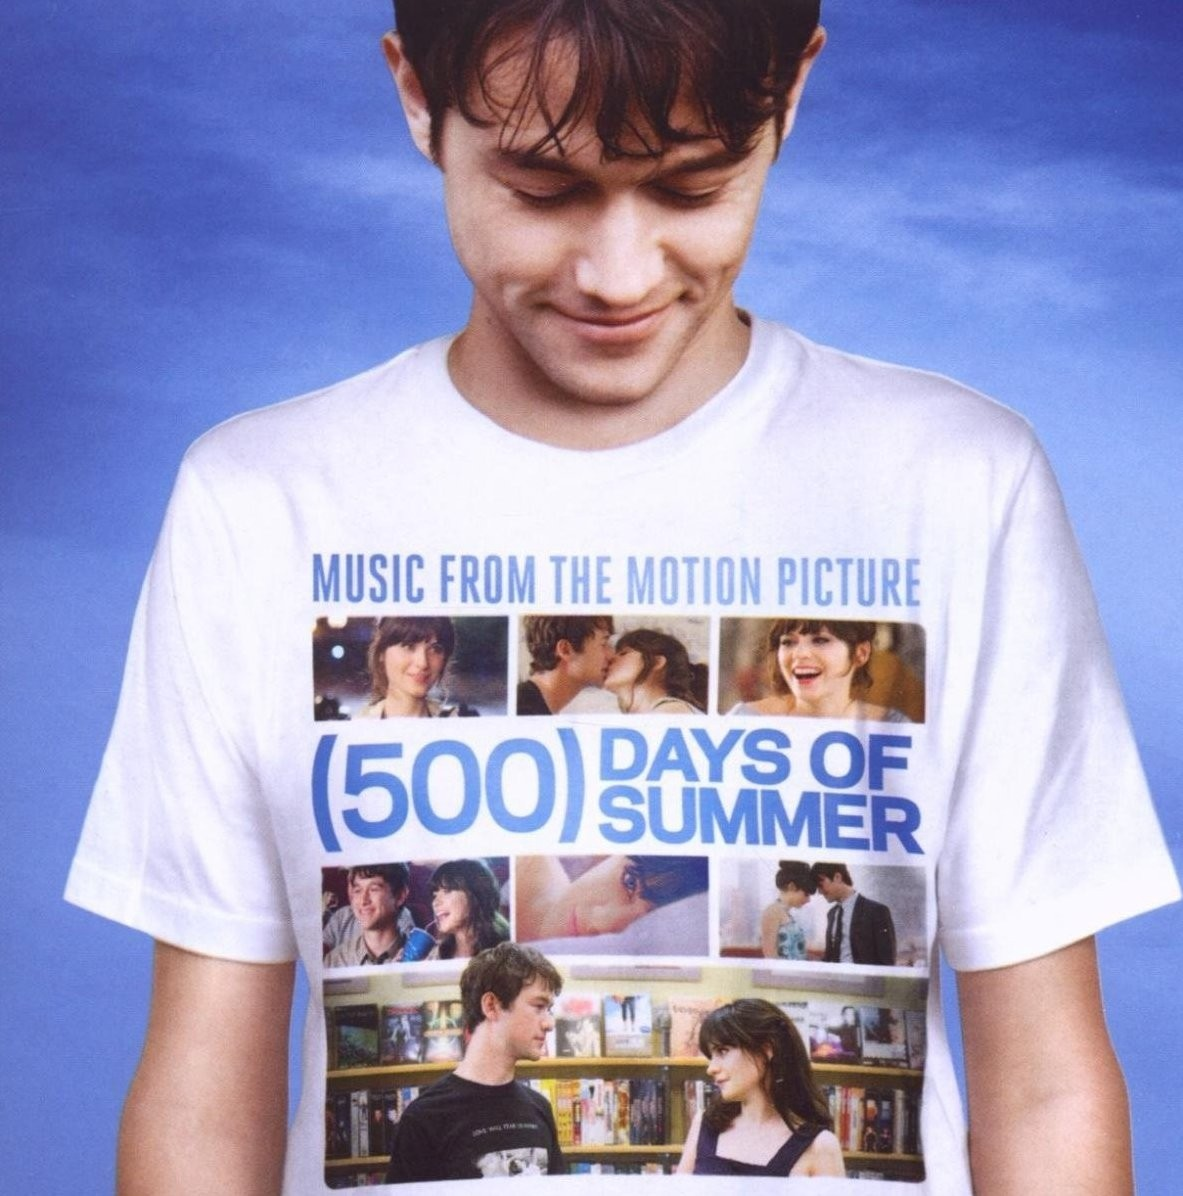 Film Music Site 500 Days Of Summer Soundtrack Various Artists Mychael Danna Rob Simonsen Sire Records 2009 Music From The Motion Picture